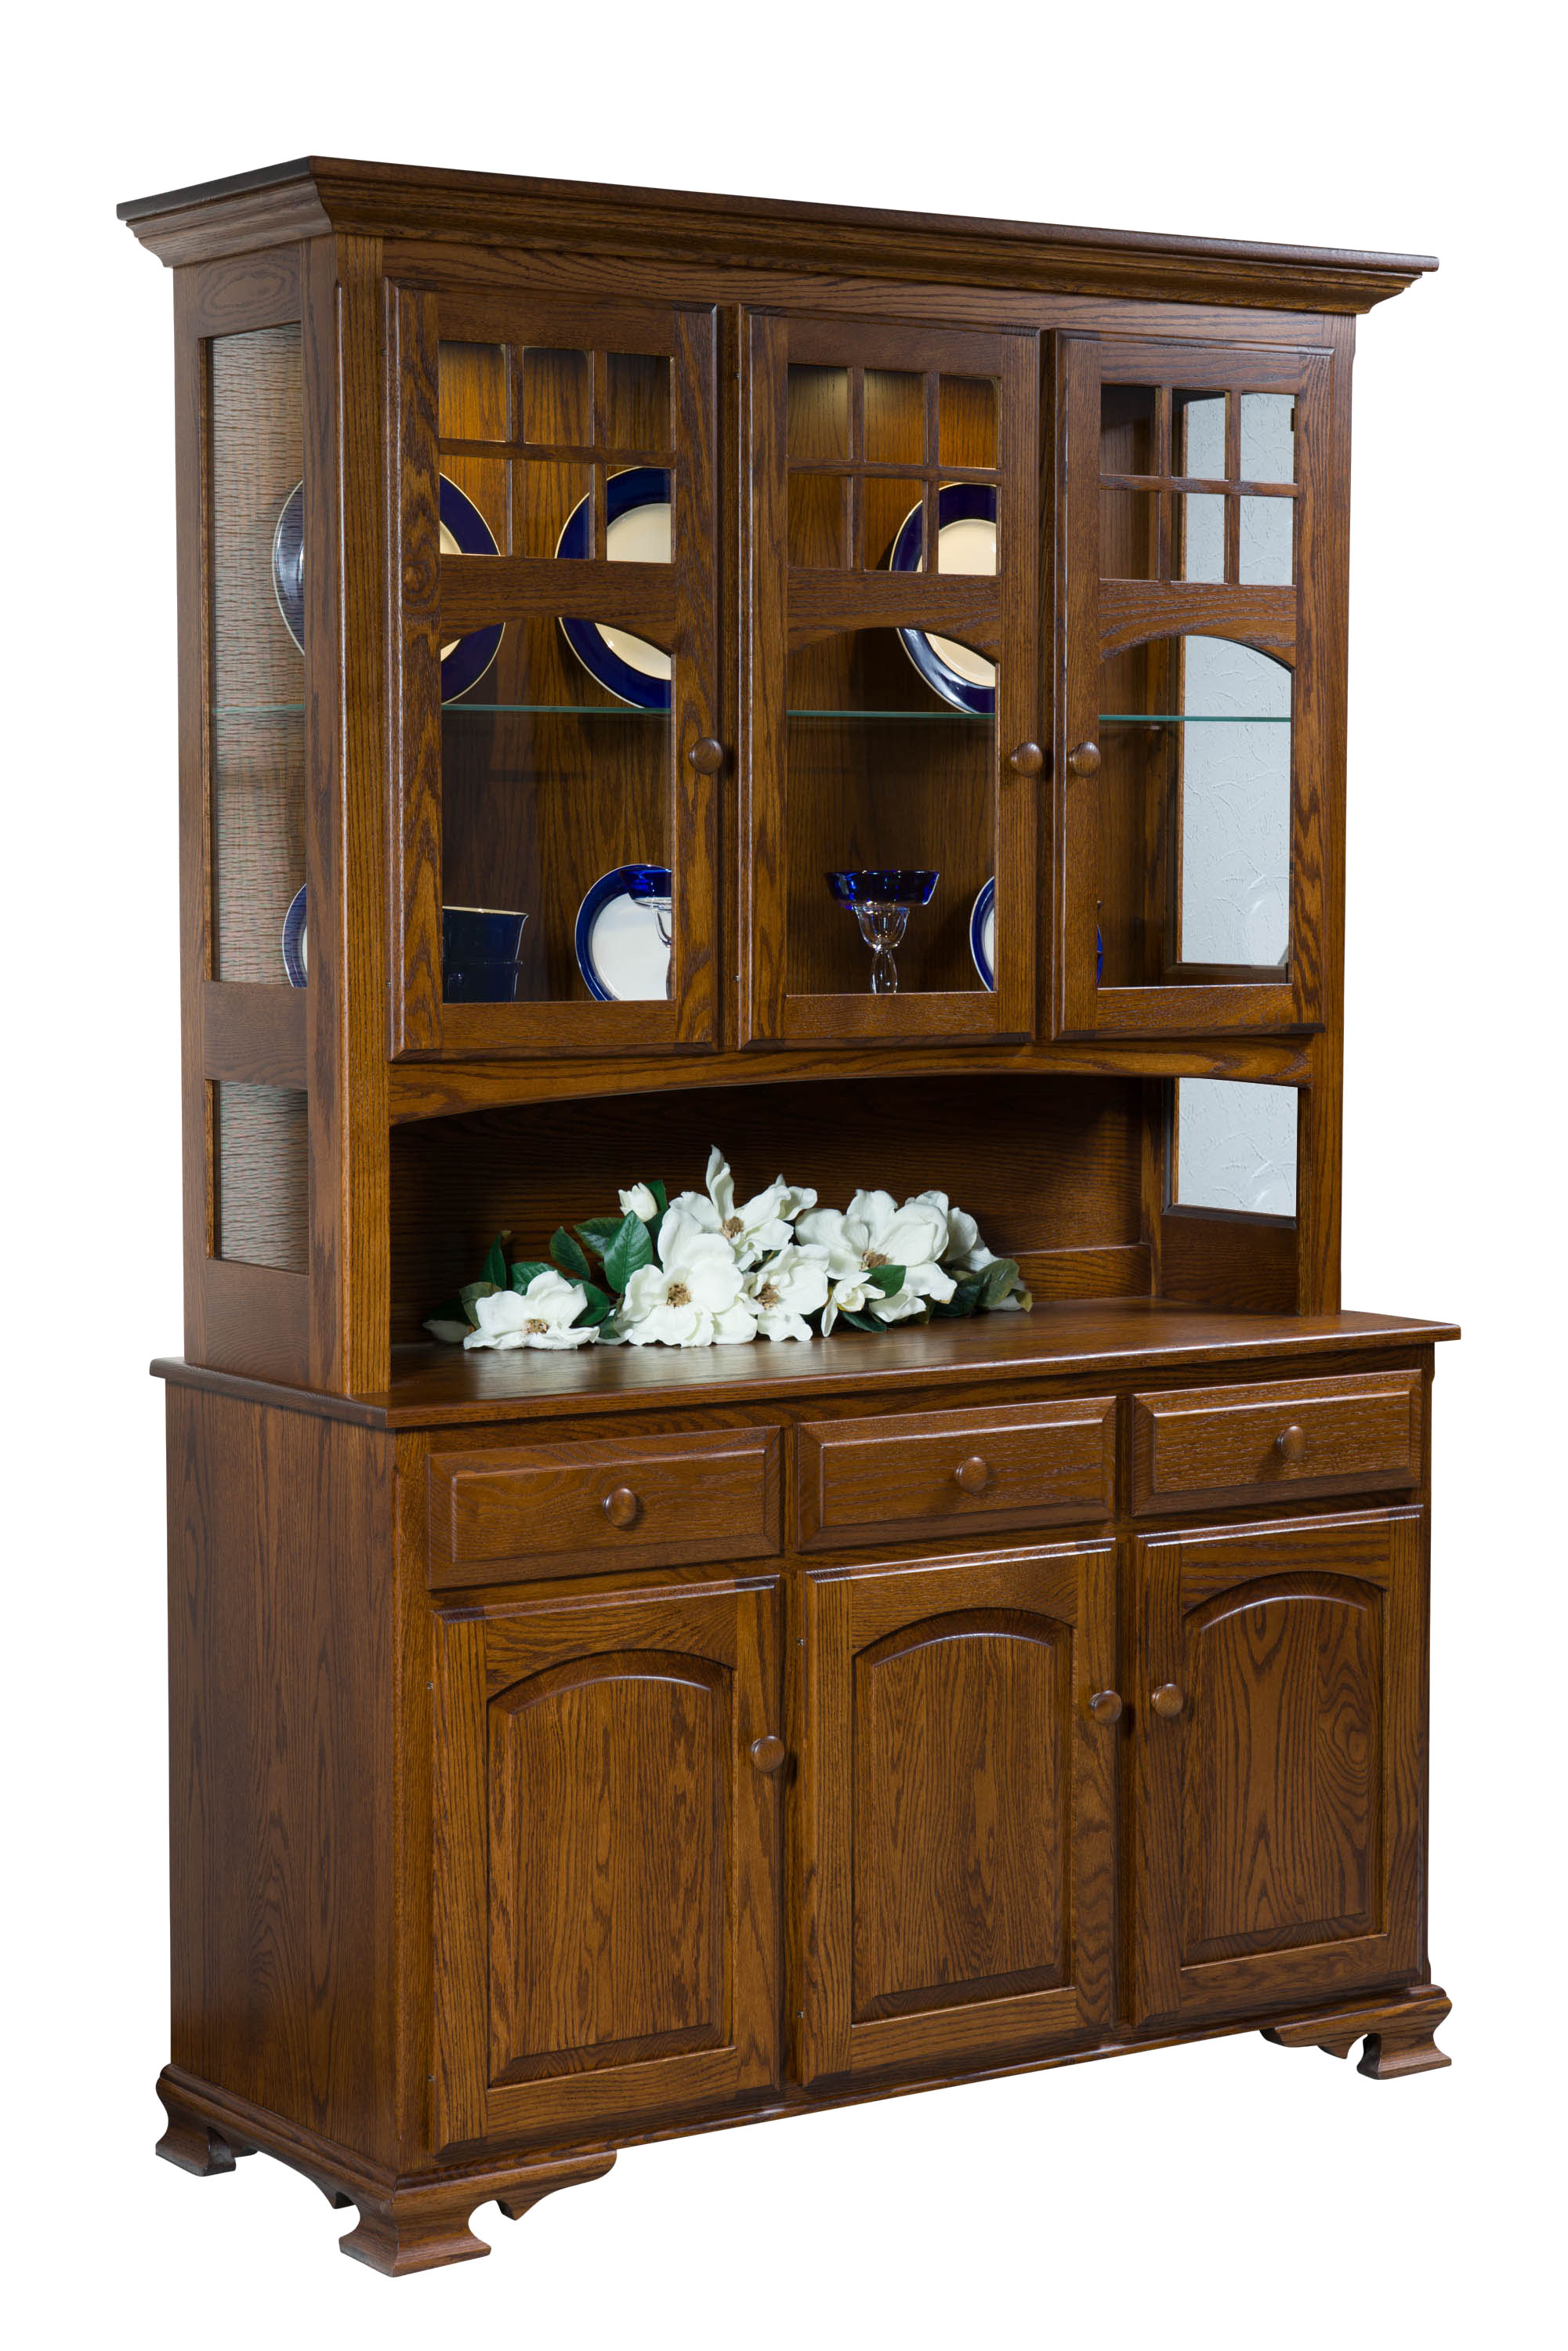 LaGrange Deluxe Hutch